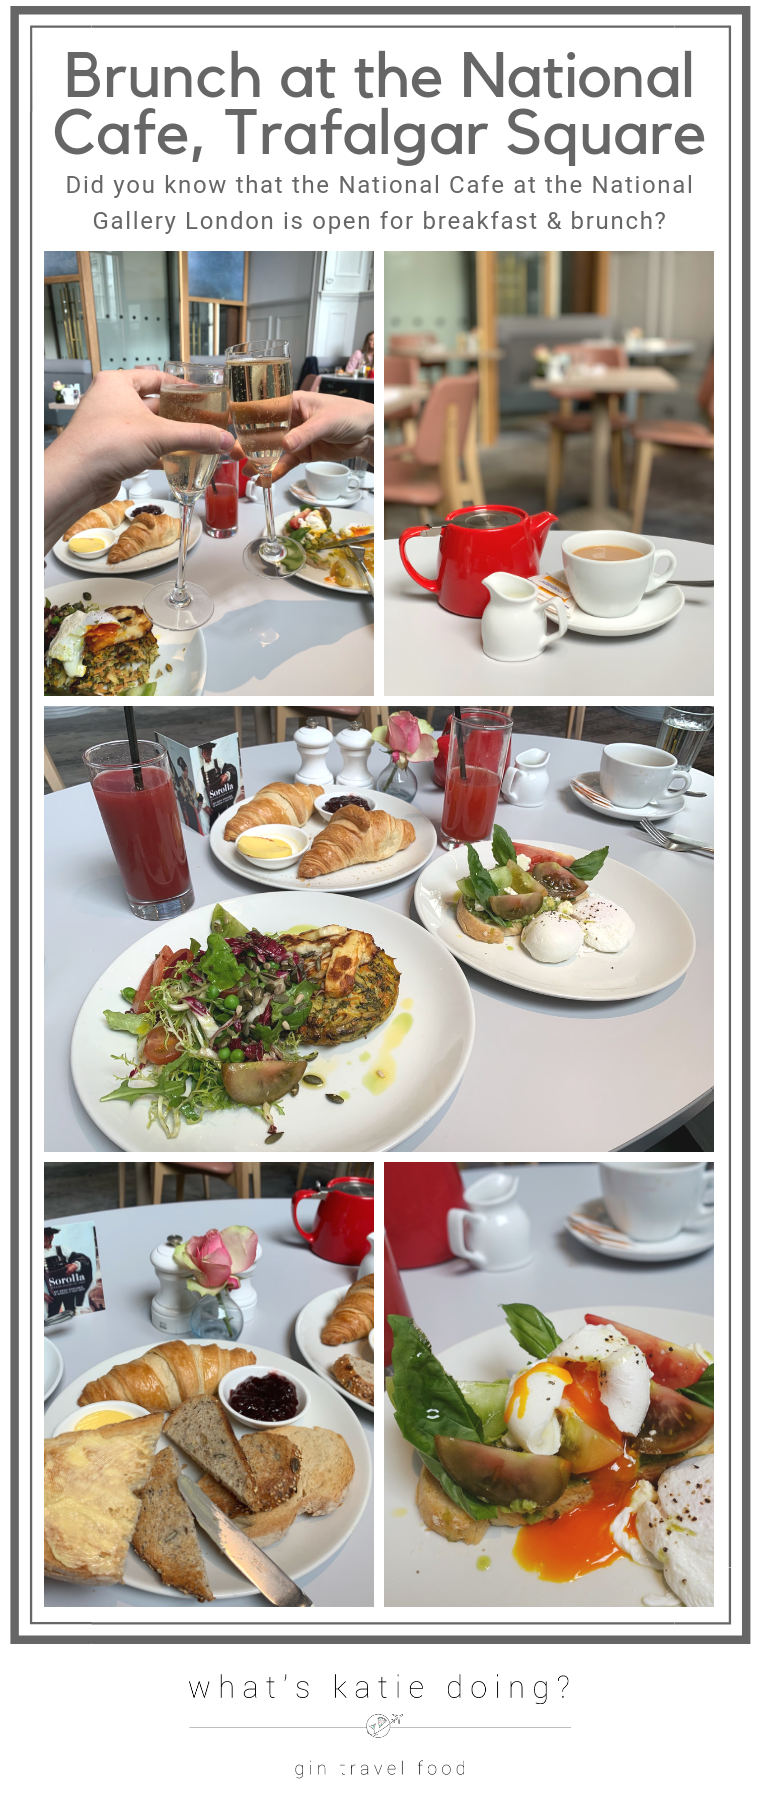 Brunch at the National Cafe, National Gallery London